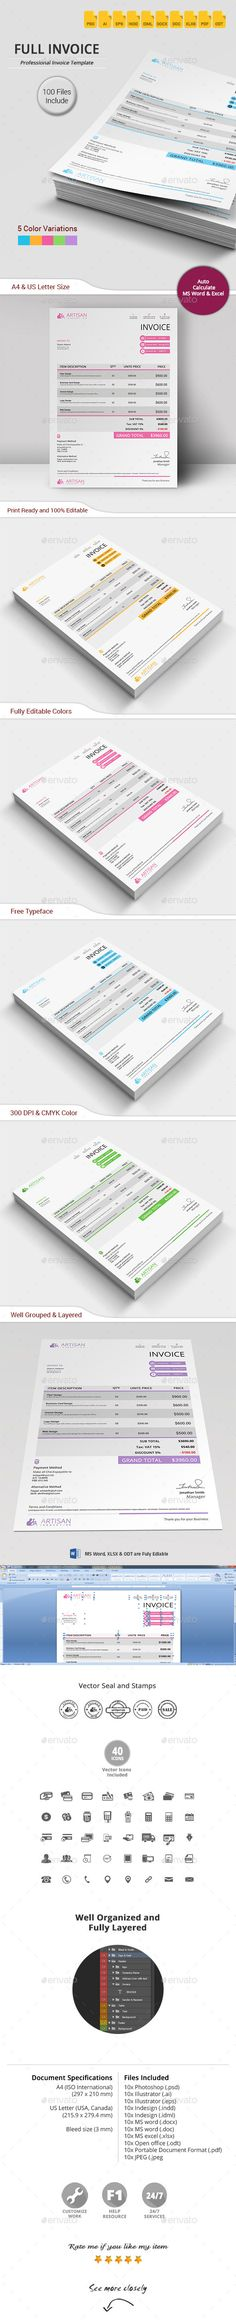 #Invoice - #Proposals & Invoices #Stationery Download here: https://graphicriver.net/item/invoice/12445963?ref=alena994